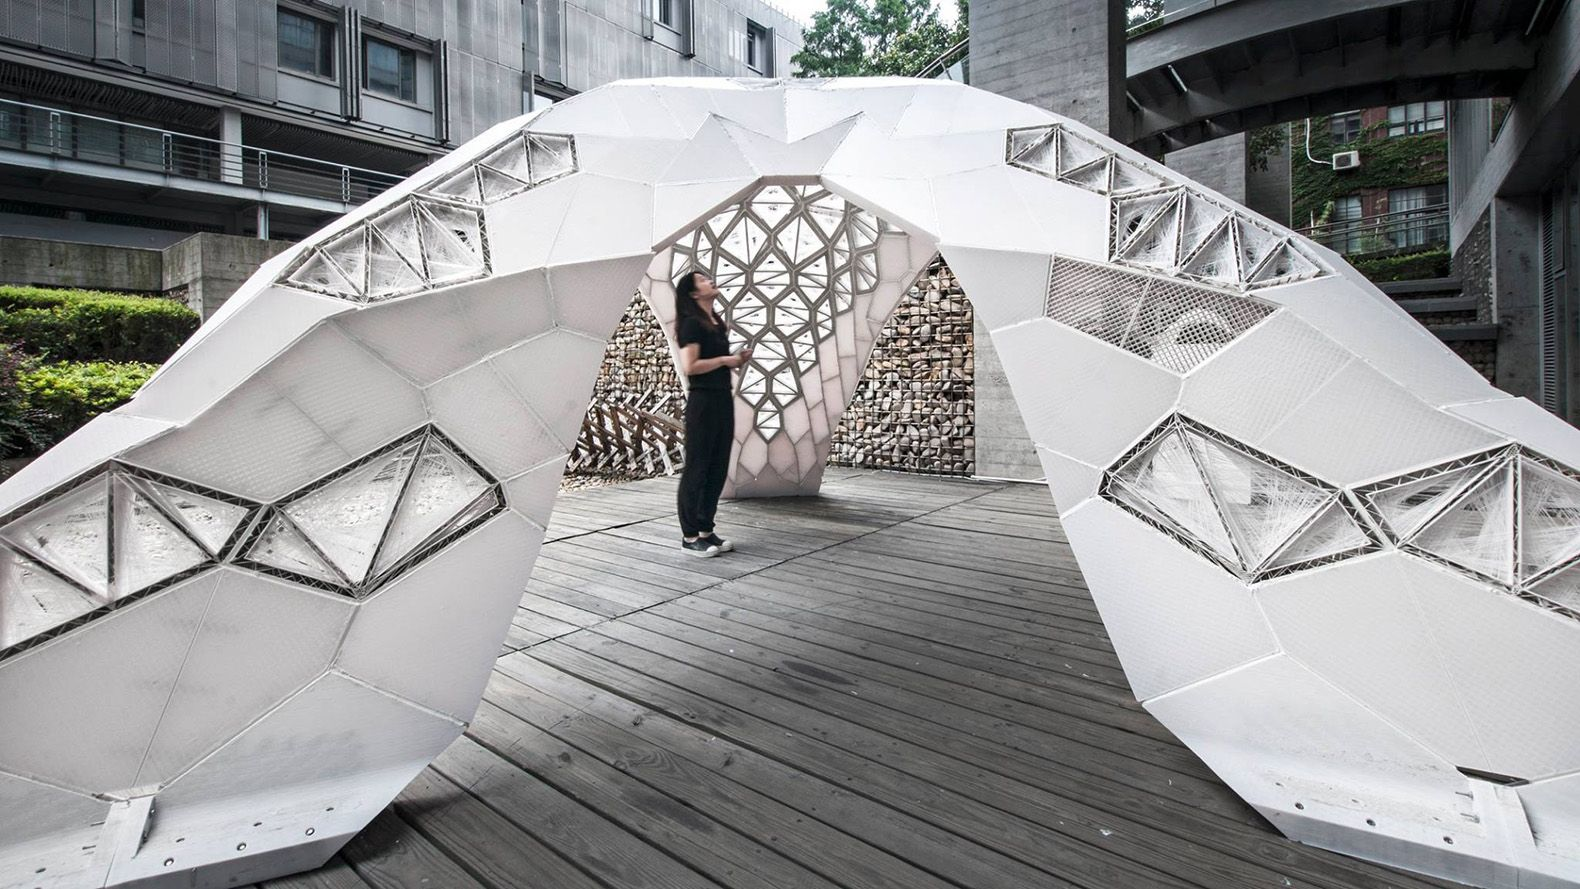 World's largest 3D-printed structure symbolizes the future of architecture